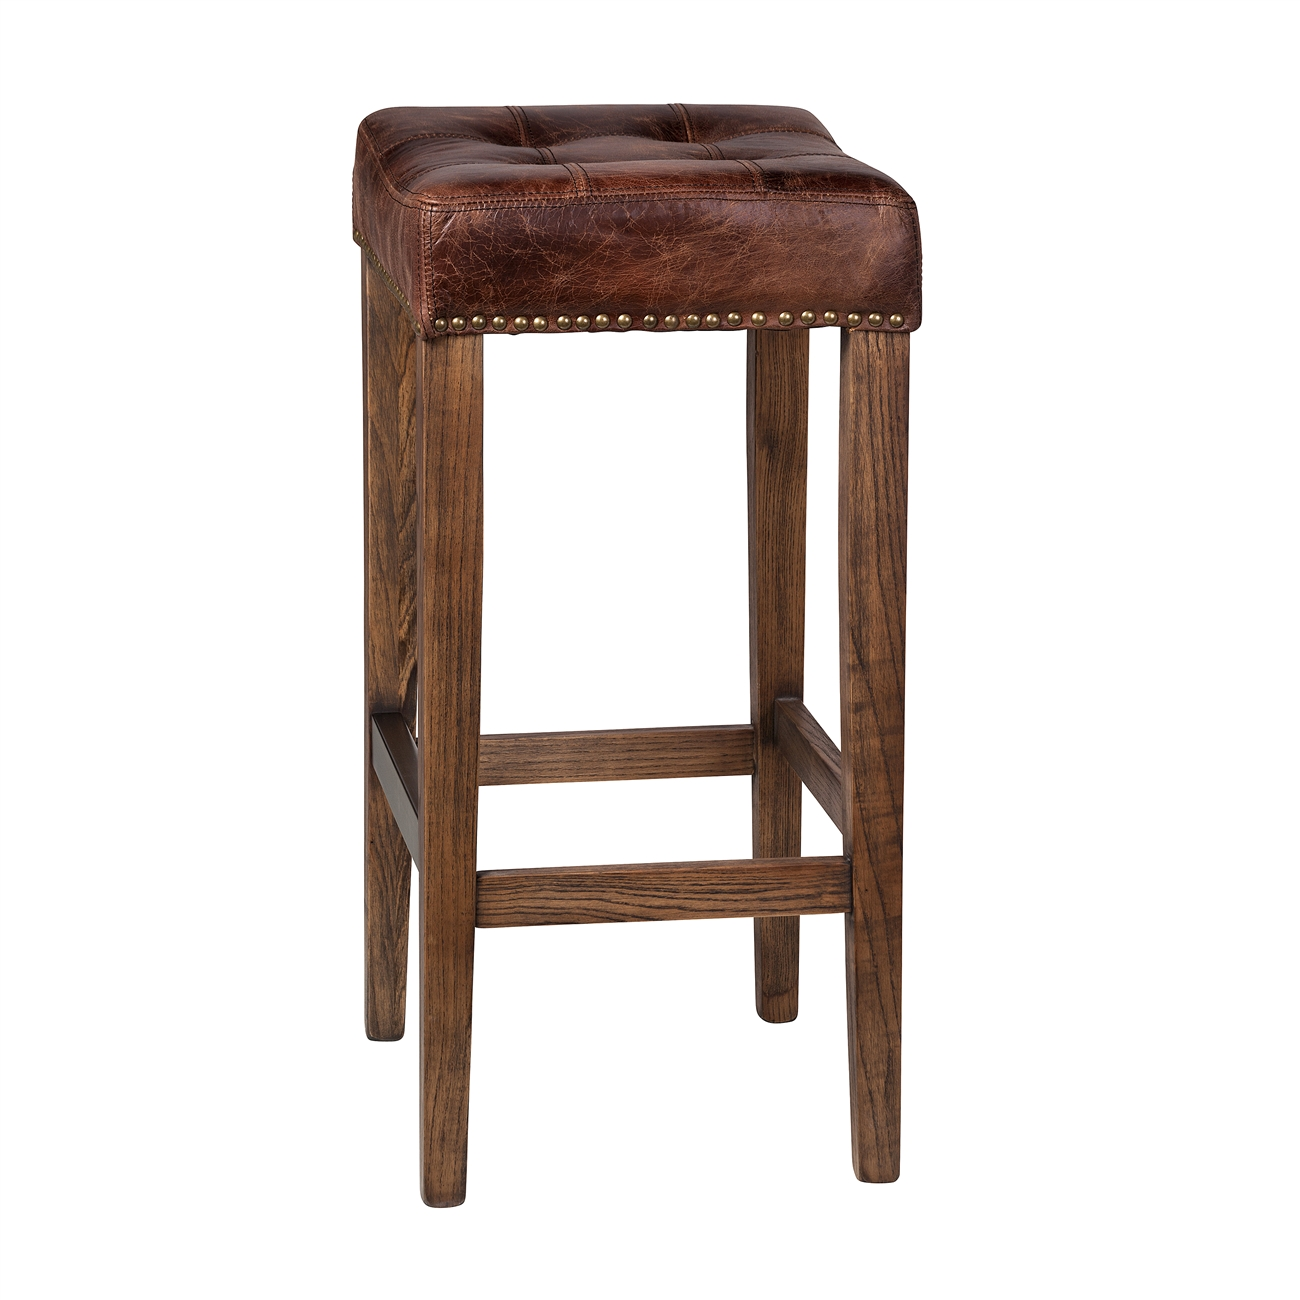 Best Of Tufted Leather Bar Stool